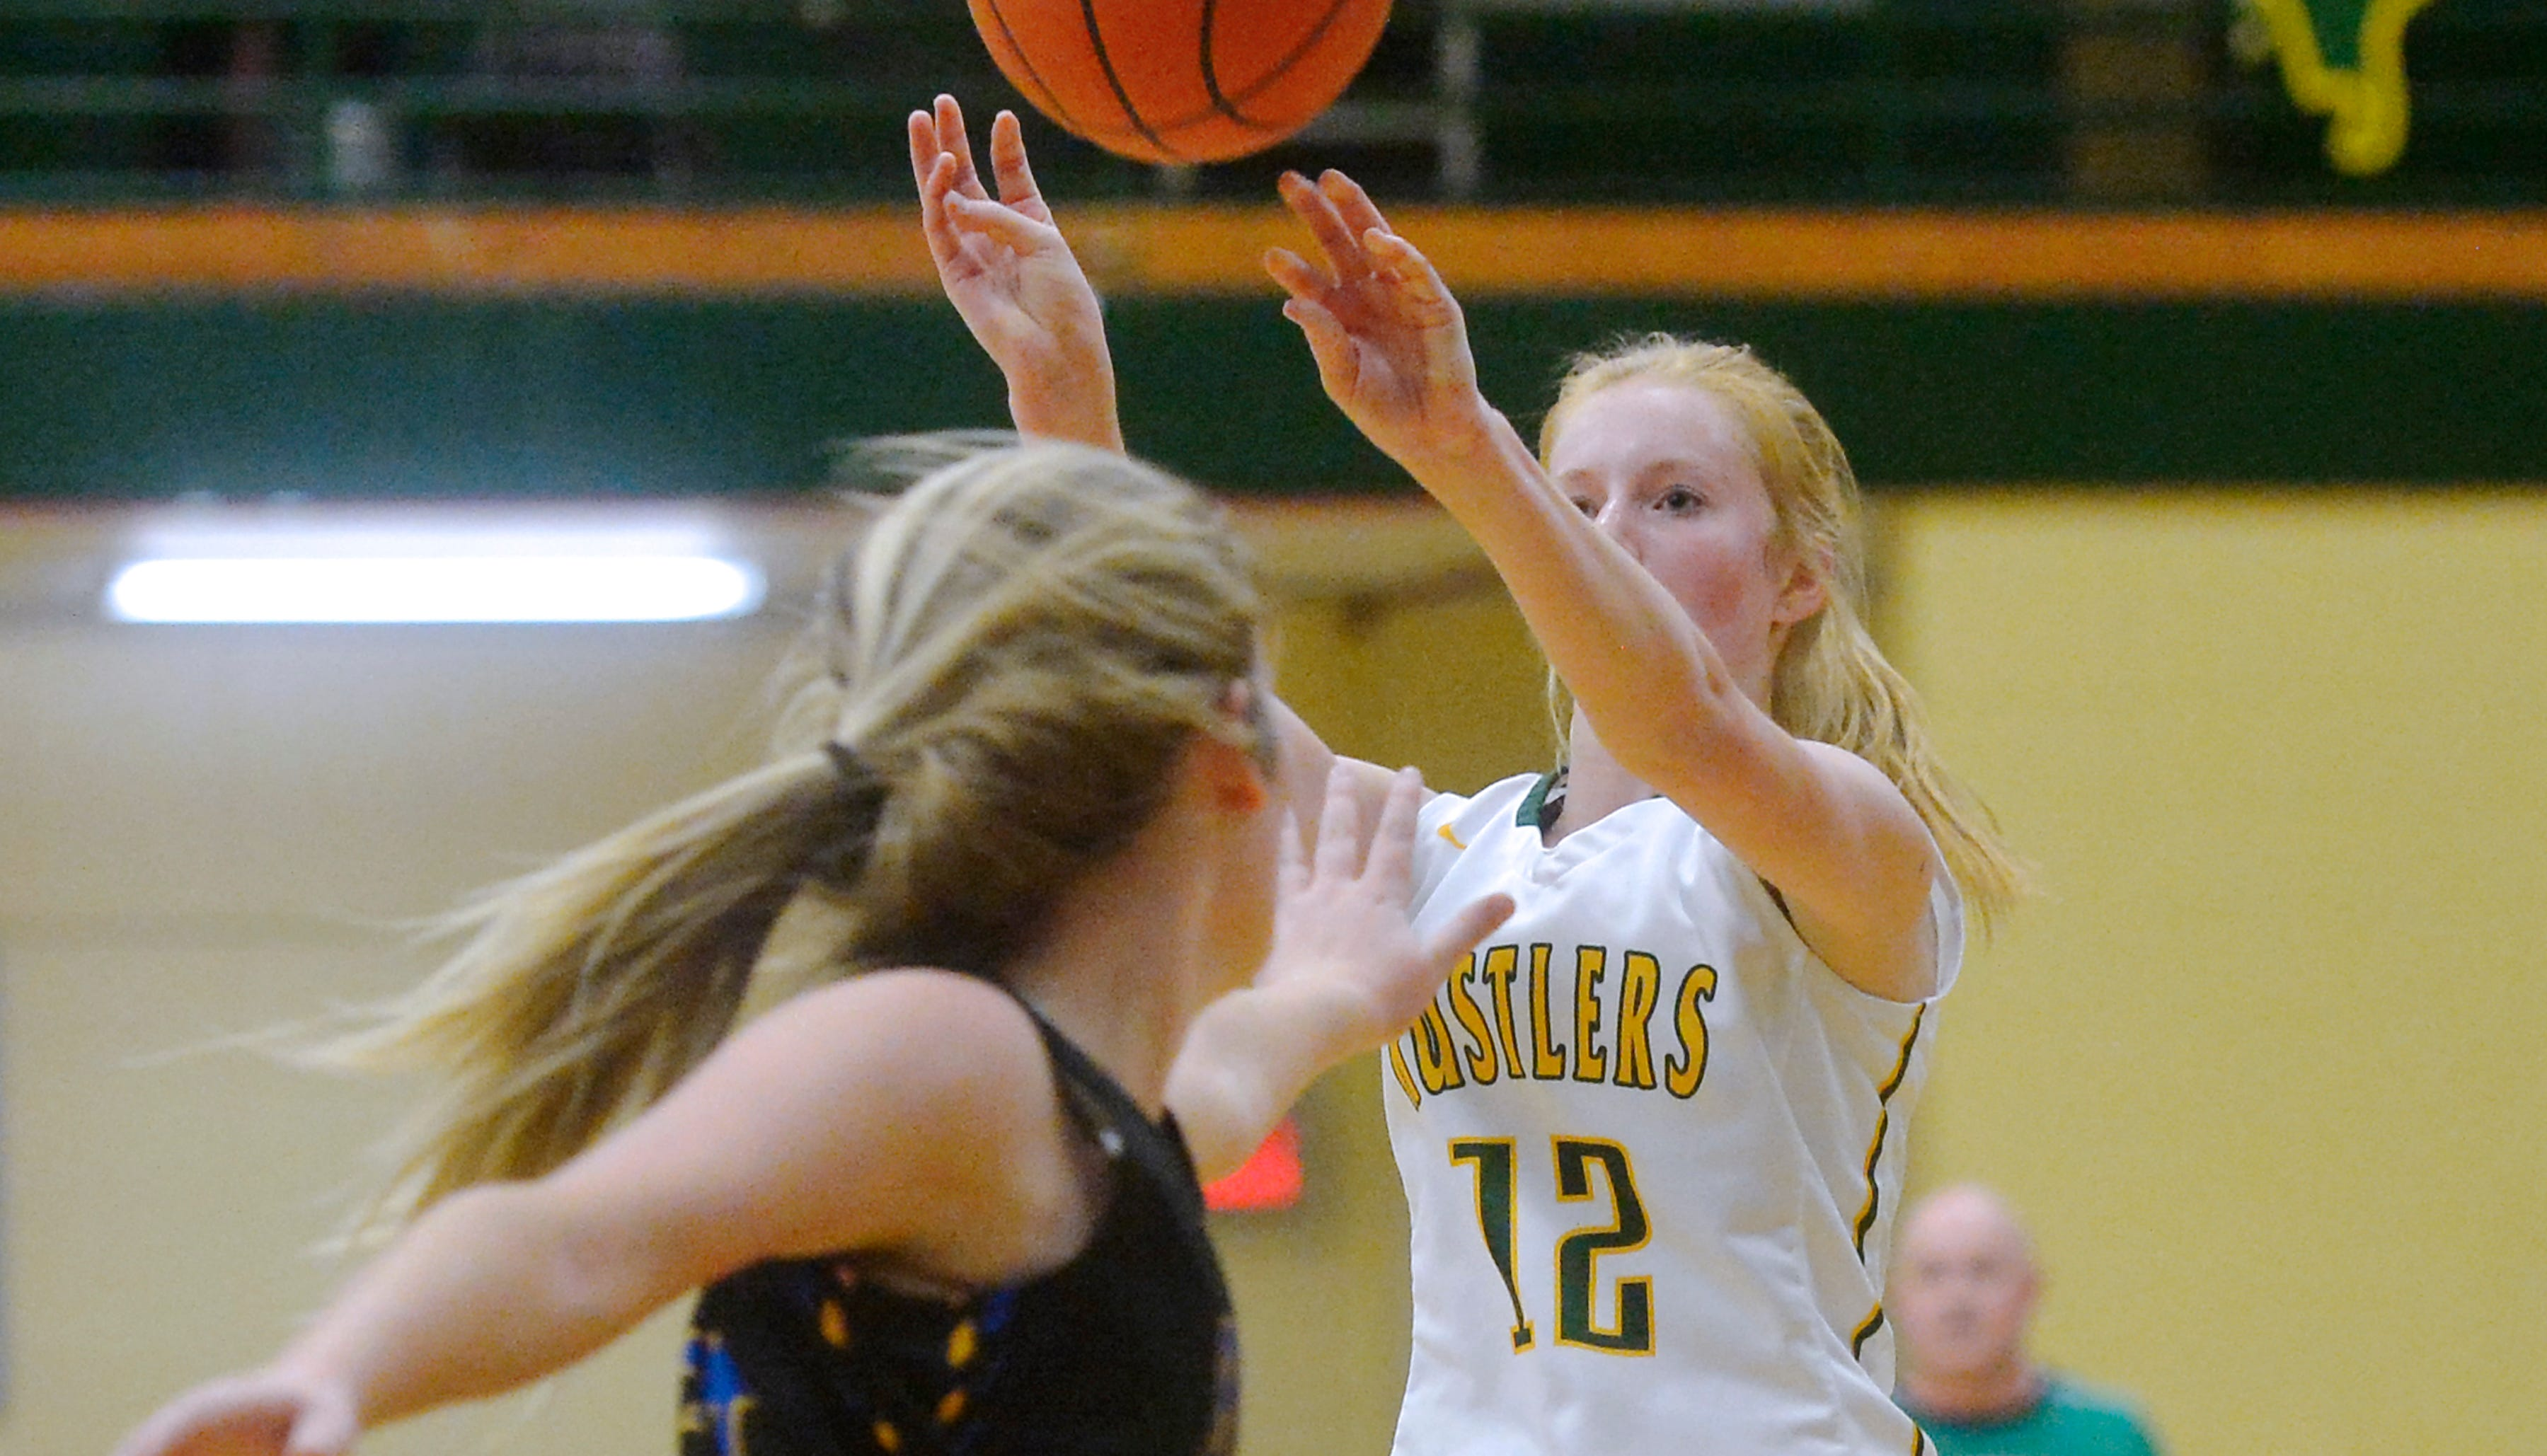 CMR's Emily Funseth shoots from the outside during Thursday evening's baskeball game against Missoula Big Sky in the CMR Fieldhouse.